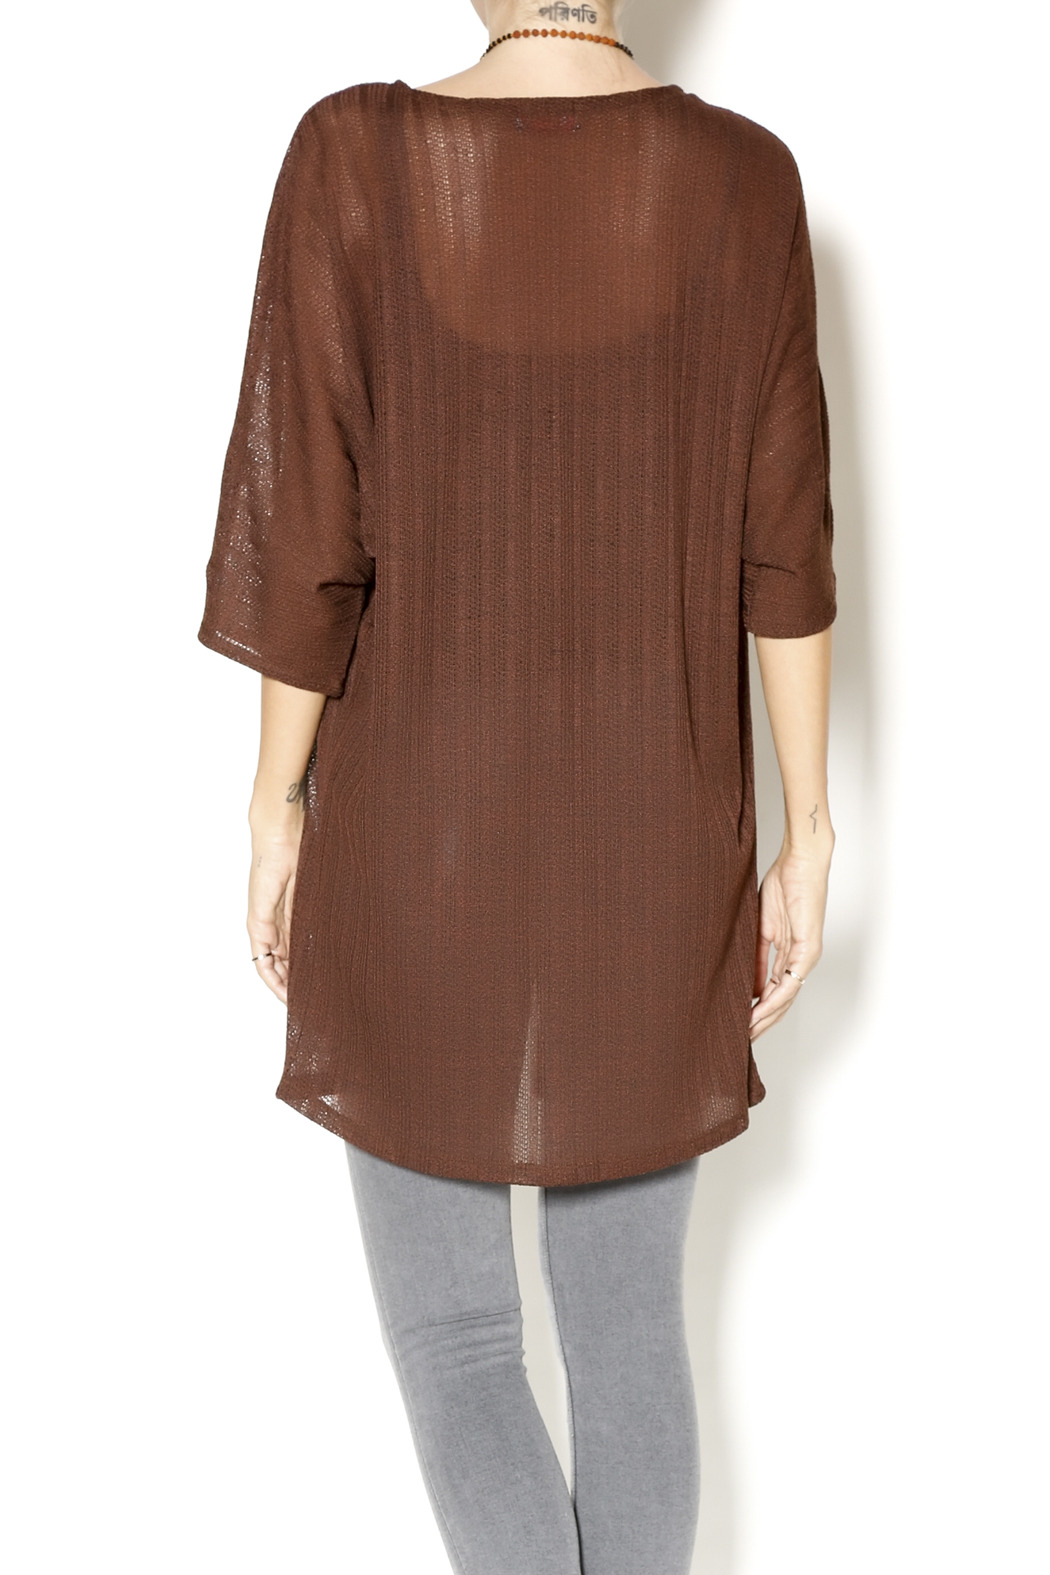 Haus of Vixen Chocolate Brown Kimono Cardigan from Louisville by ...